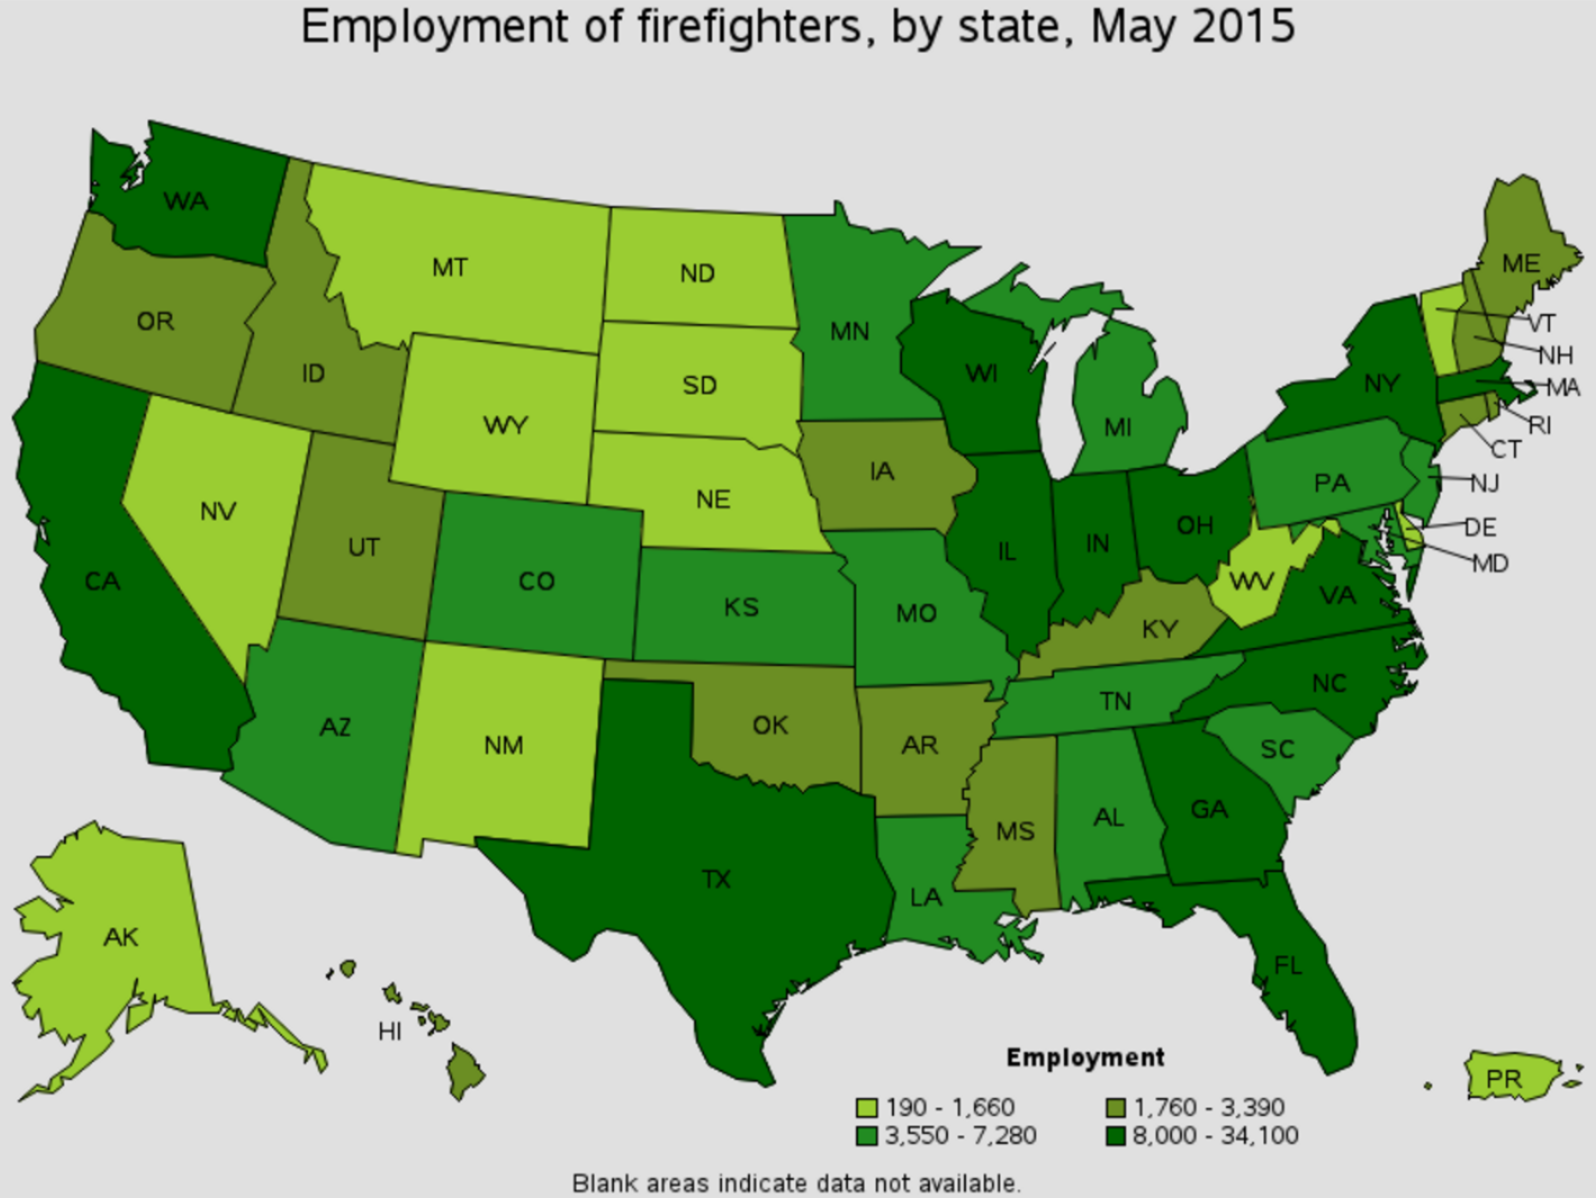 firefighter job outlook by state Winooski Vermont